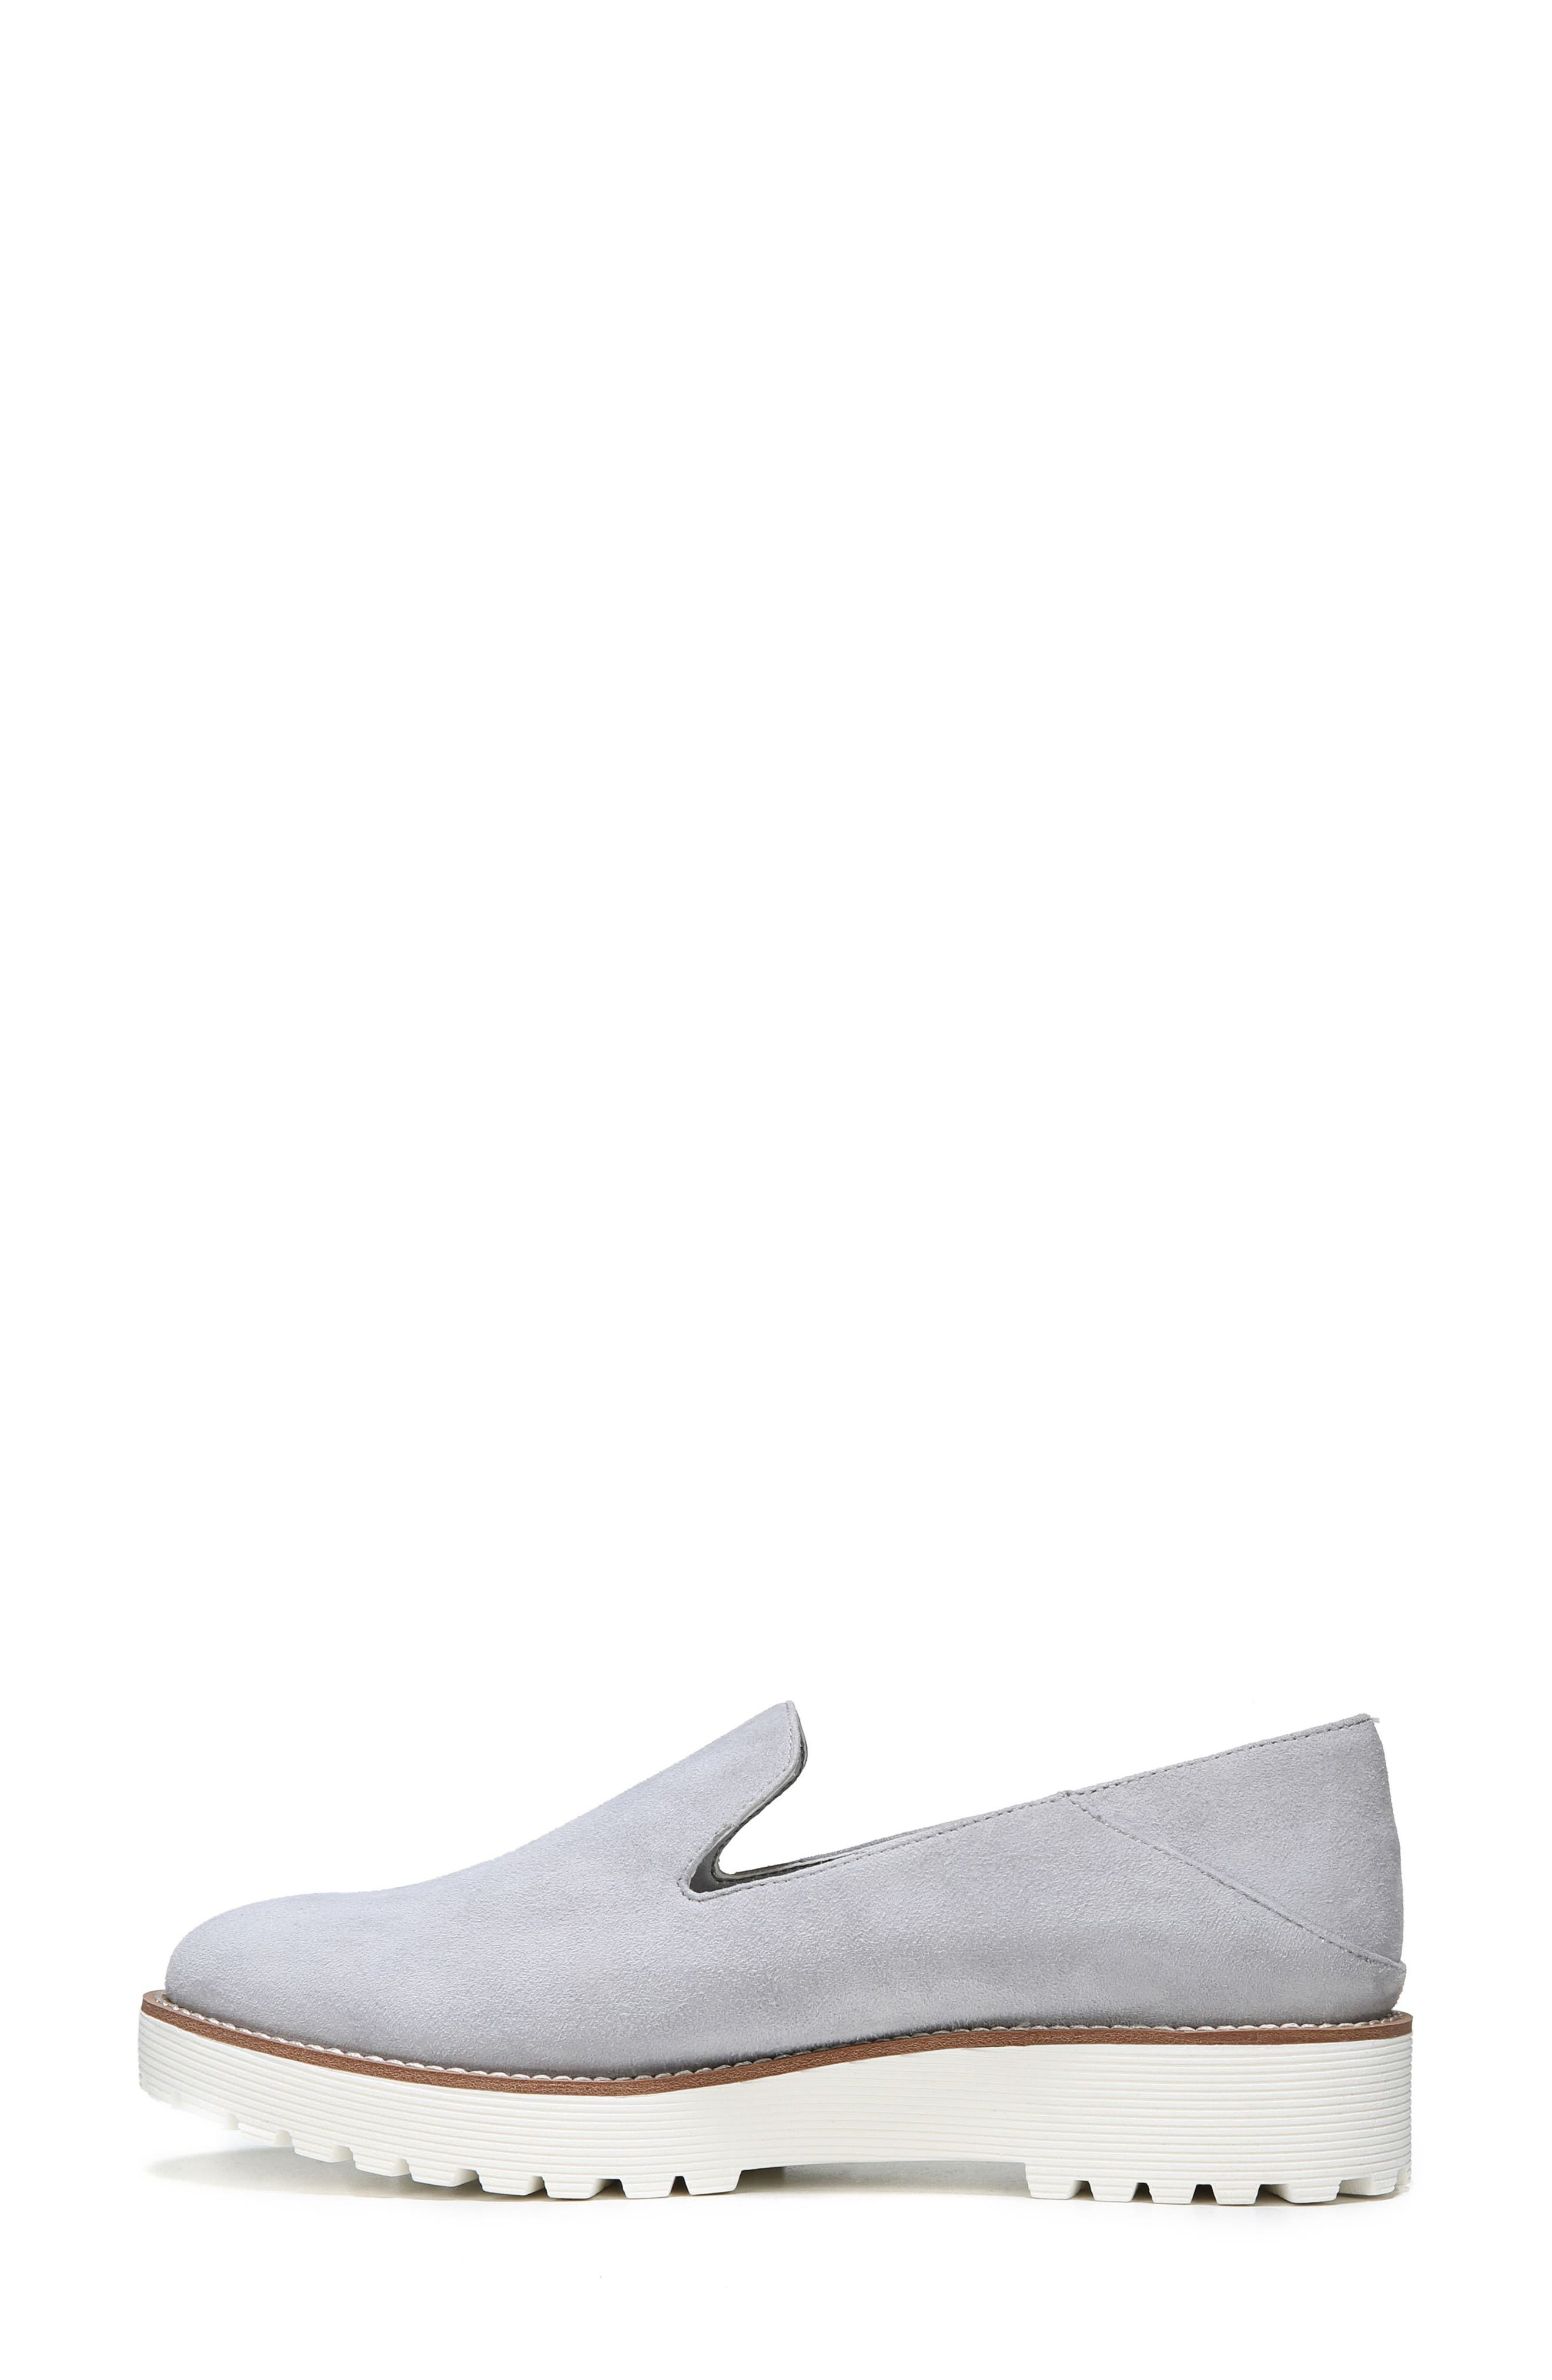 Jaxton Loafer,                             Alternate thumbnail 3, color,                             Artic Grey Suede